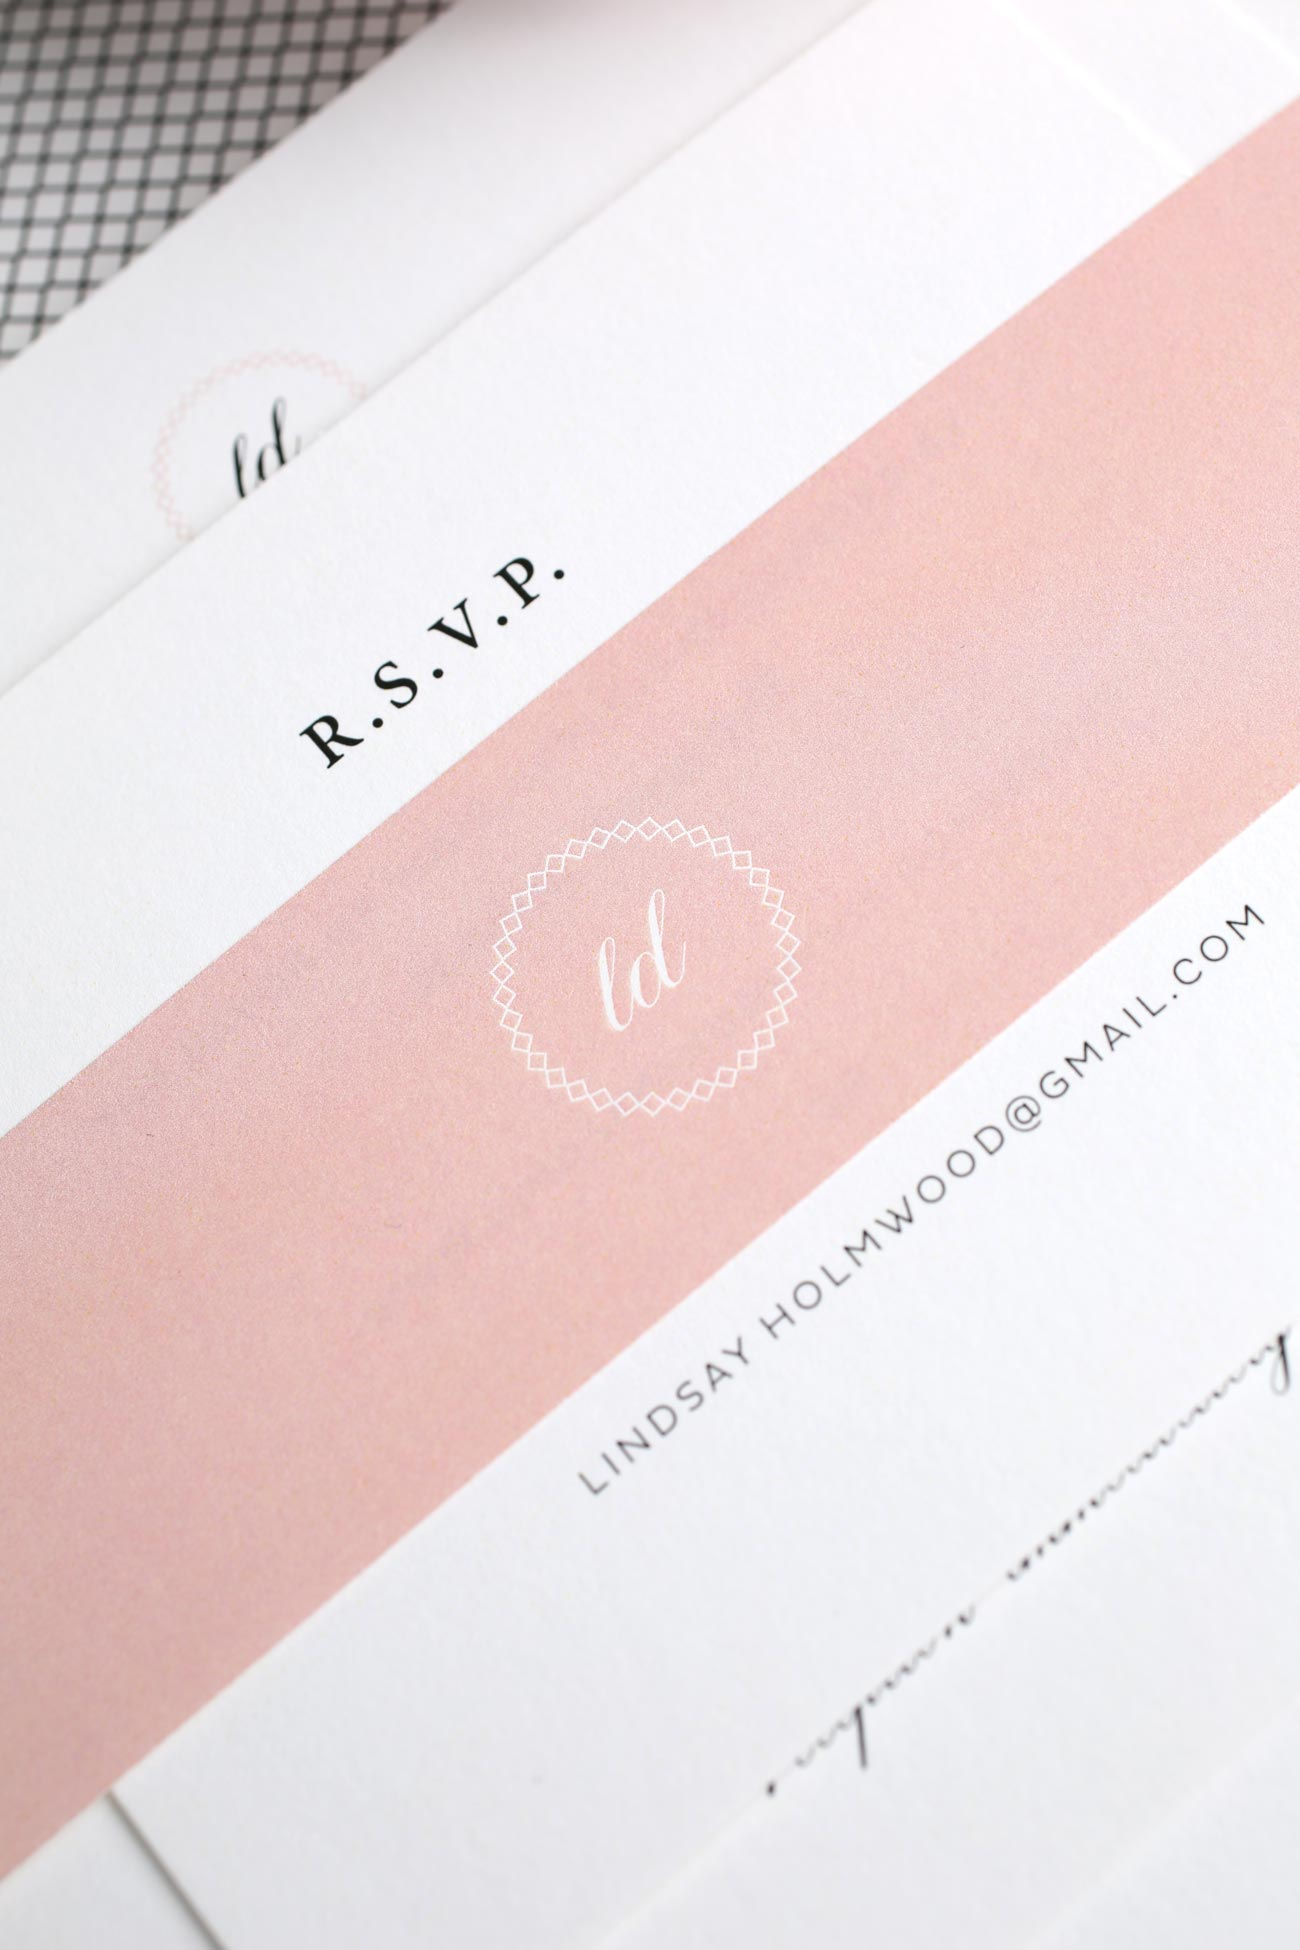 Elegant wedding invitations in blush with a monogram